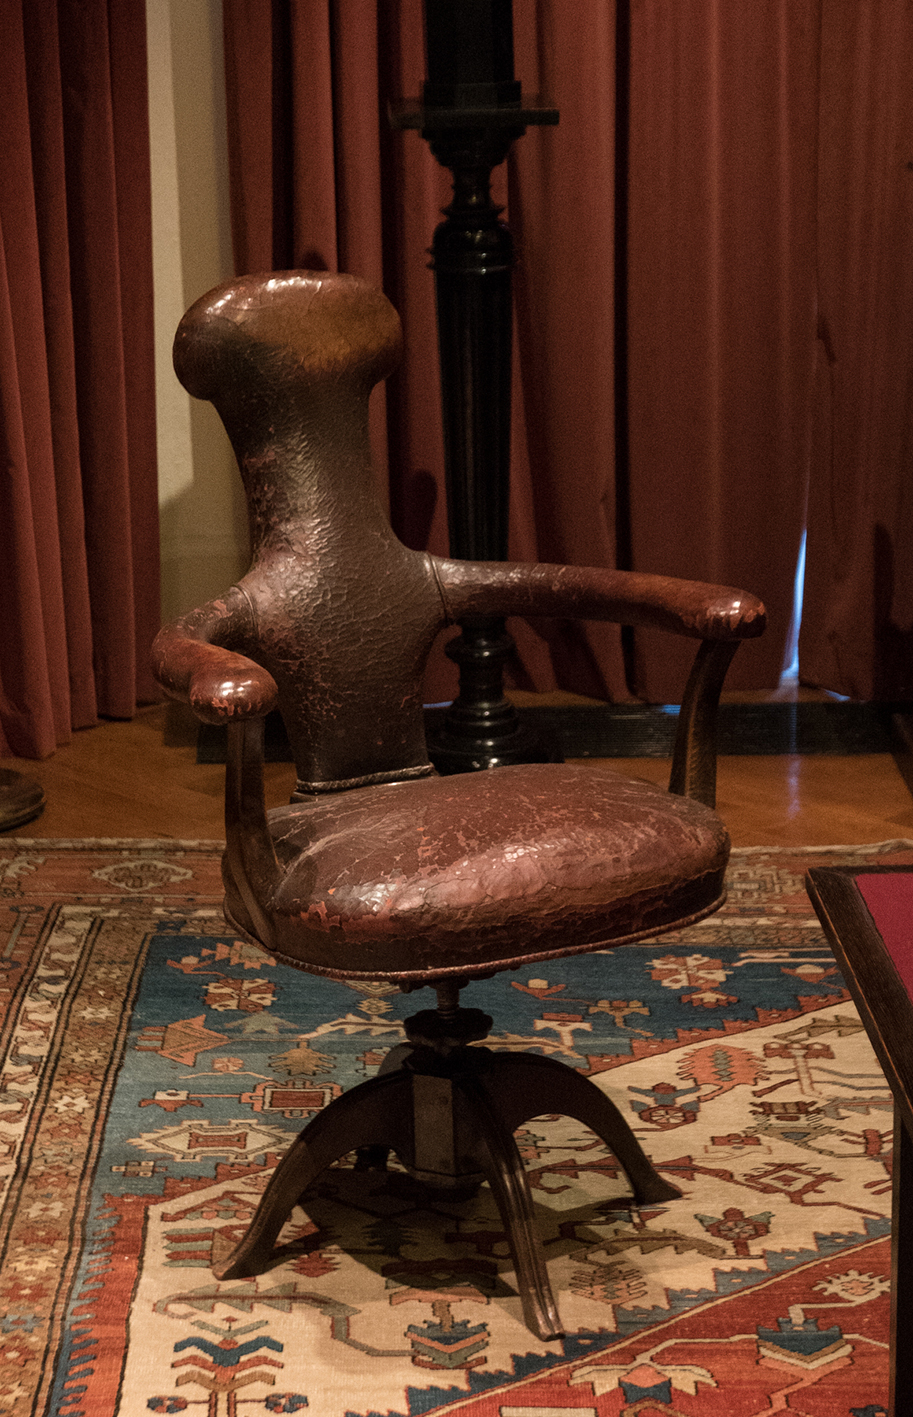 Richmond Nicholas Photography. Freud's study in London - his remarkable chair made to his own design.